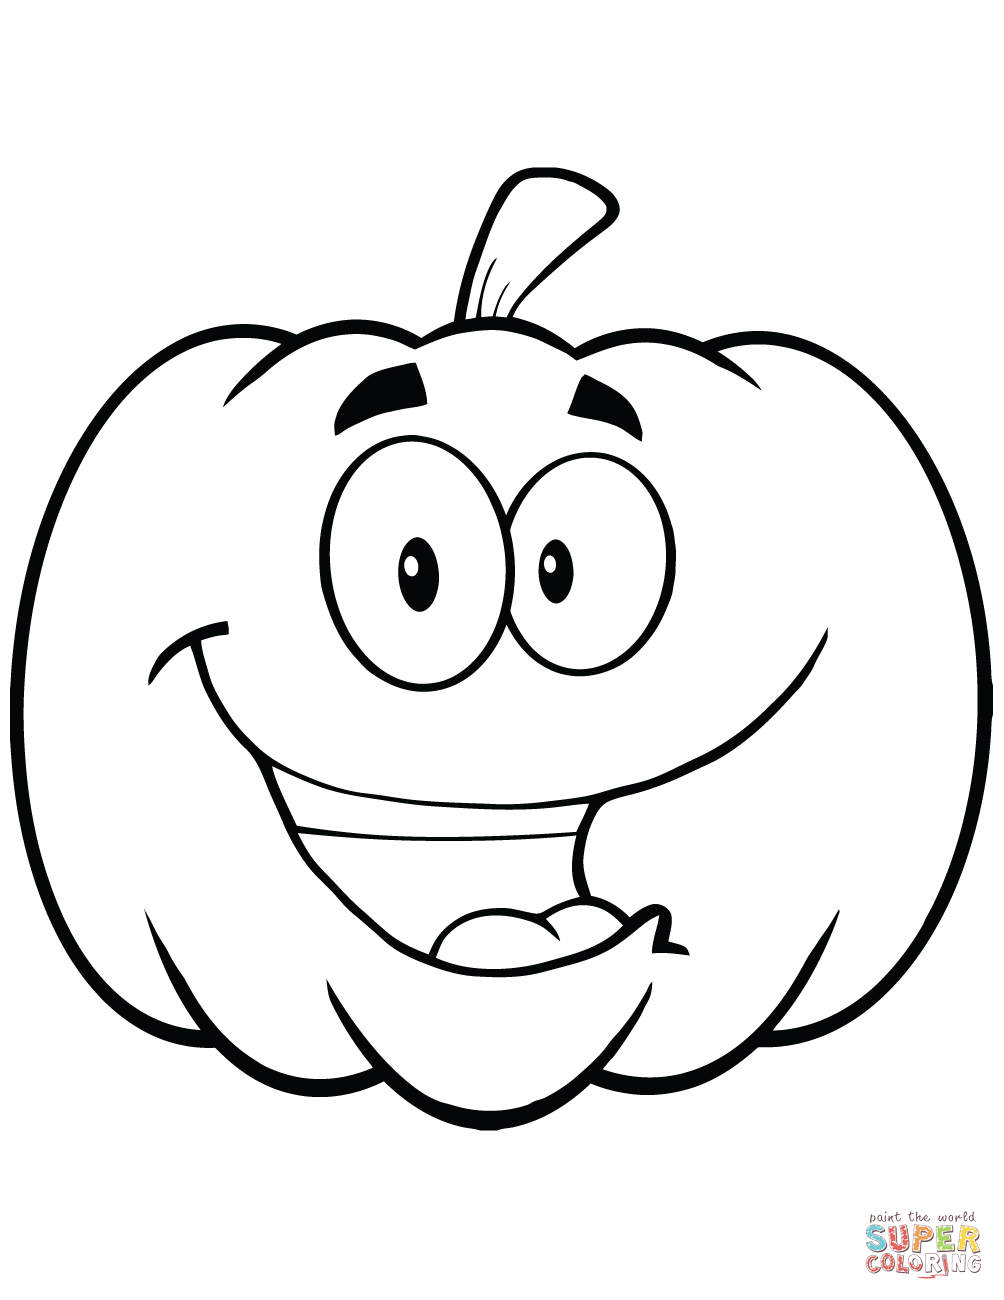 free coloring pages of pumpkins pumpkins coloring pages to celebrate thanksgiving learn coloring free of pumpkins pages